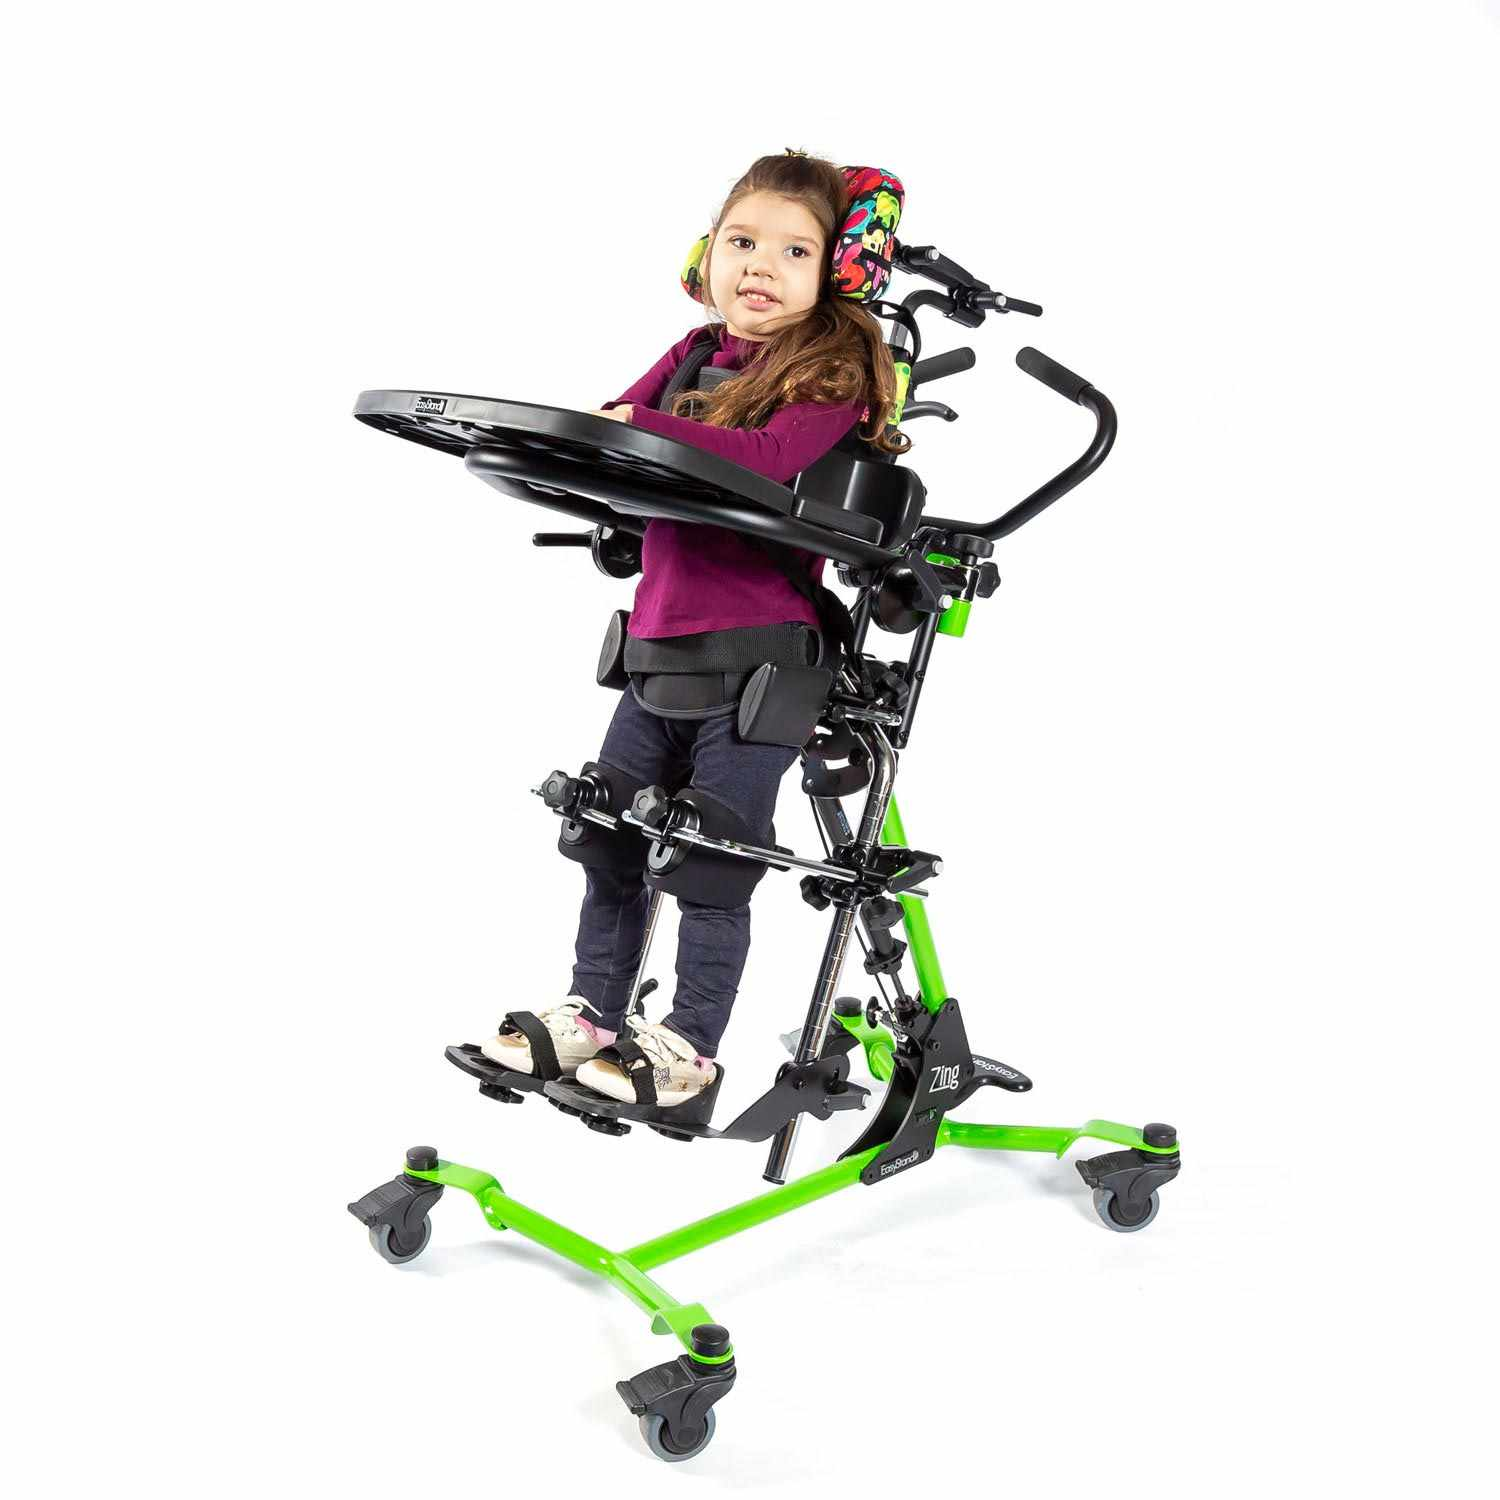 Easystand Zing size 1 supine stander